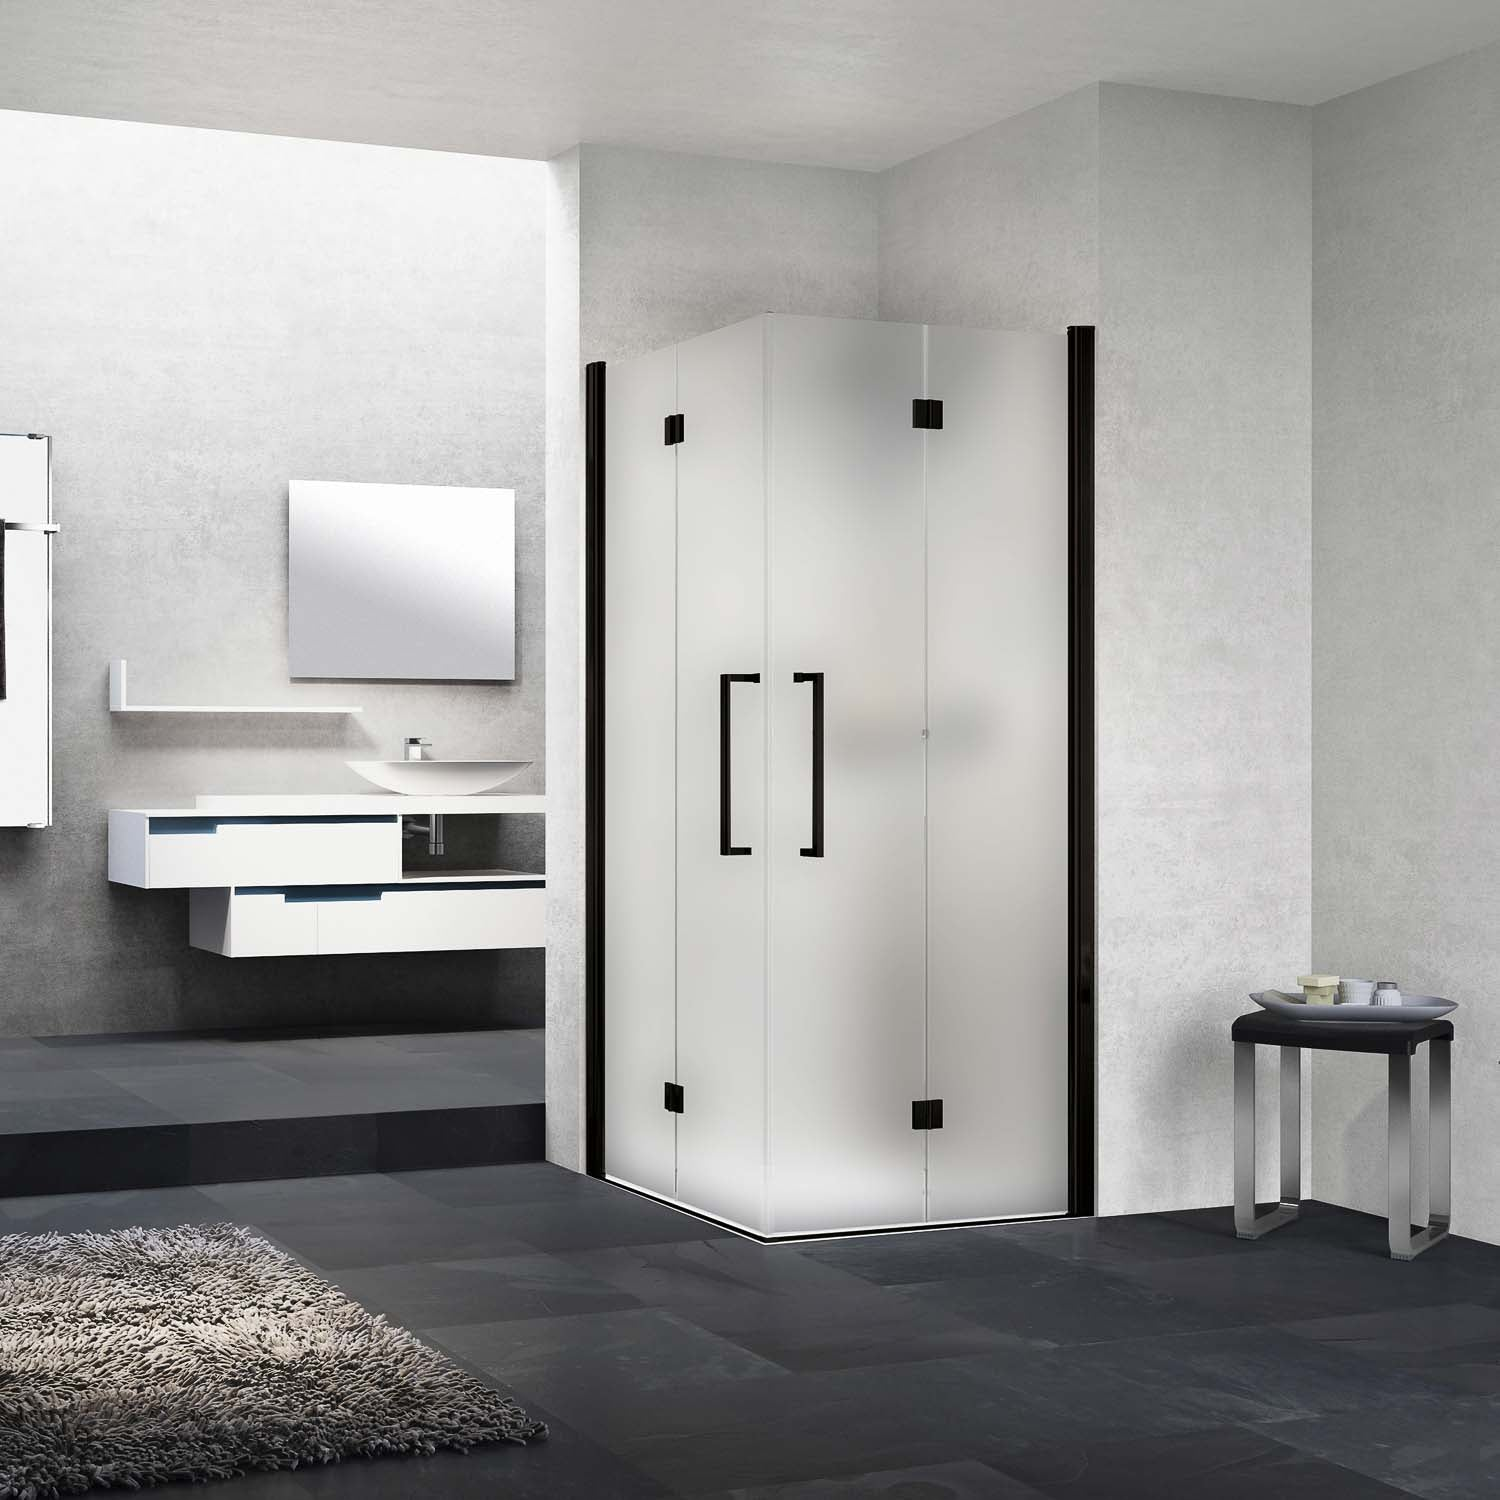 750-770mm Bliss Bi-folding Screen Frosted Glass with a matt black finish lifestyle image